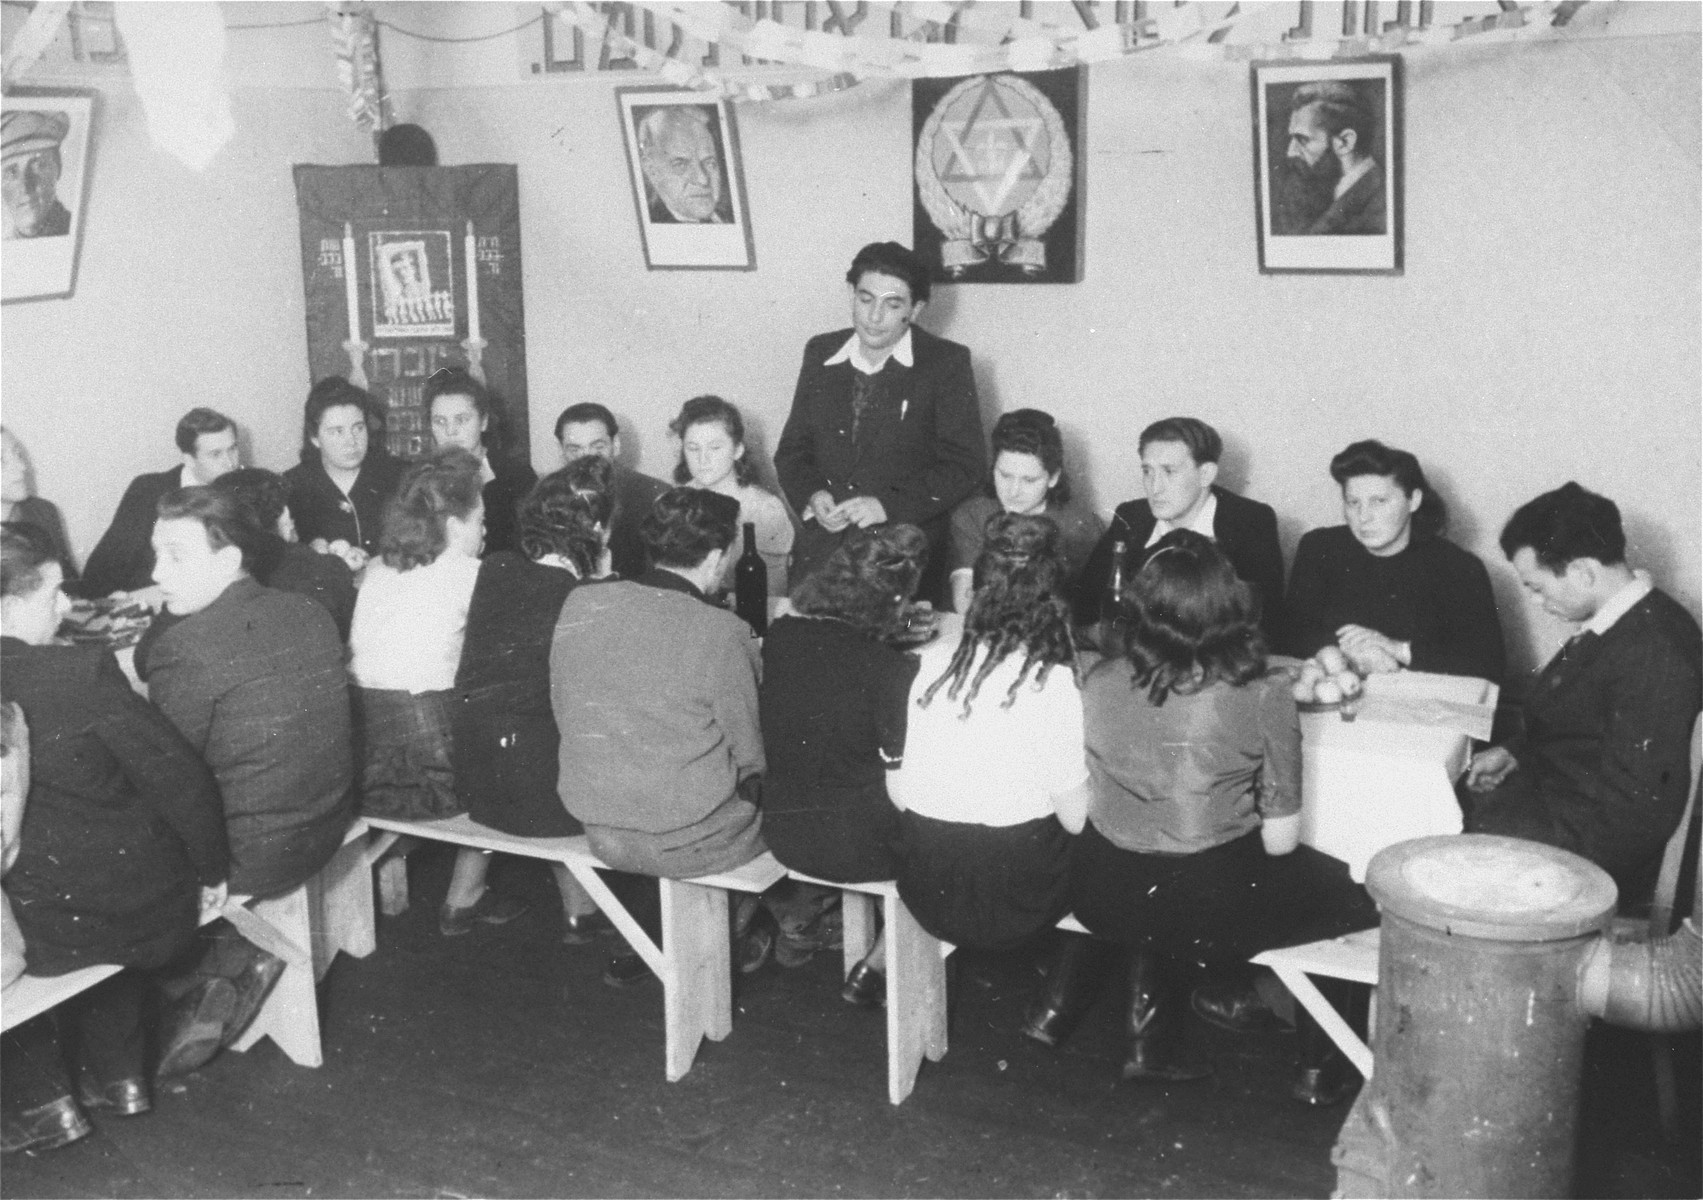 Meeting of a Zionist youth organization in the Zeilsheim displaced persons' camp.  Pictured in the back row, third from the left is Sheyne-Bela Burke (Propis).  She is the sister of Berl  Berk, who was killed in the Kovno ghetto along with 426 intellectuals.